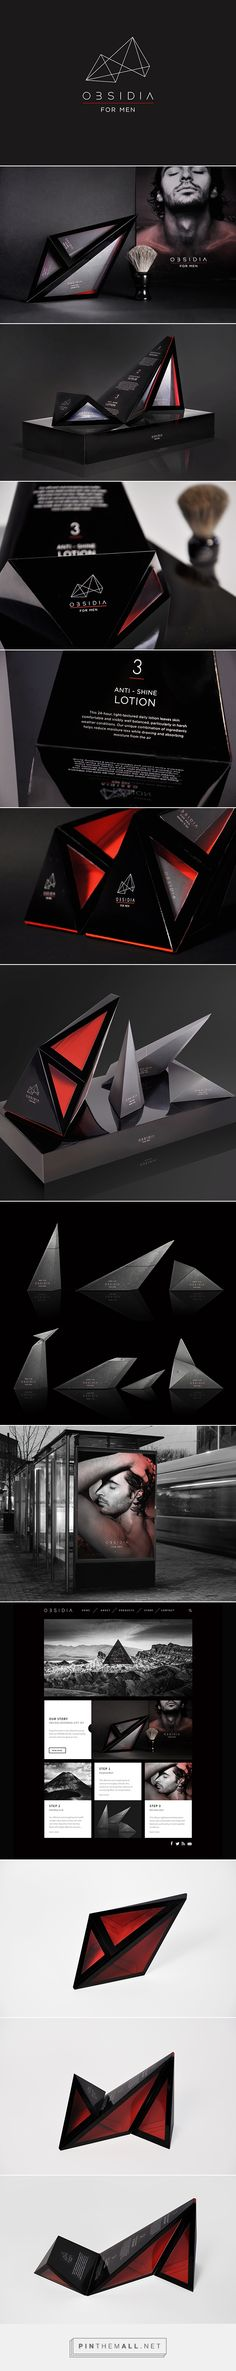 OBSIDIA for men on Behance curated by Packaging Diva PD I would buy it : )